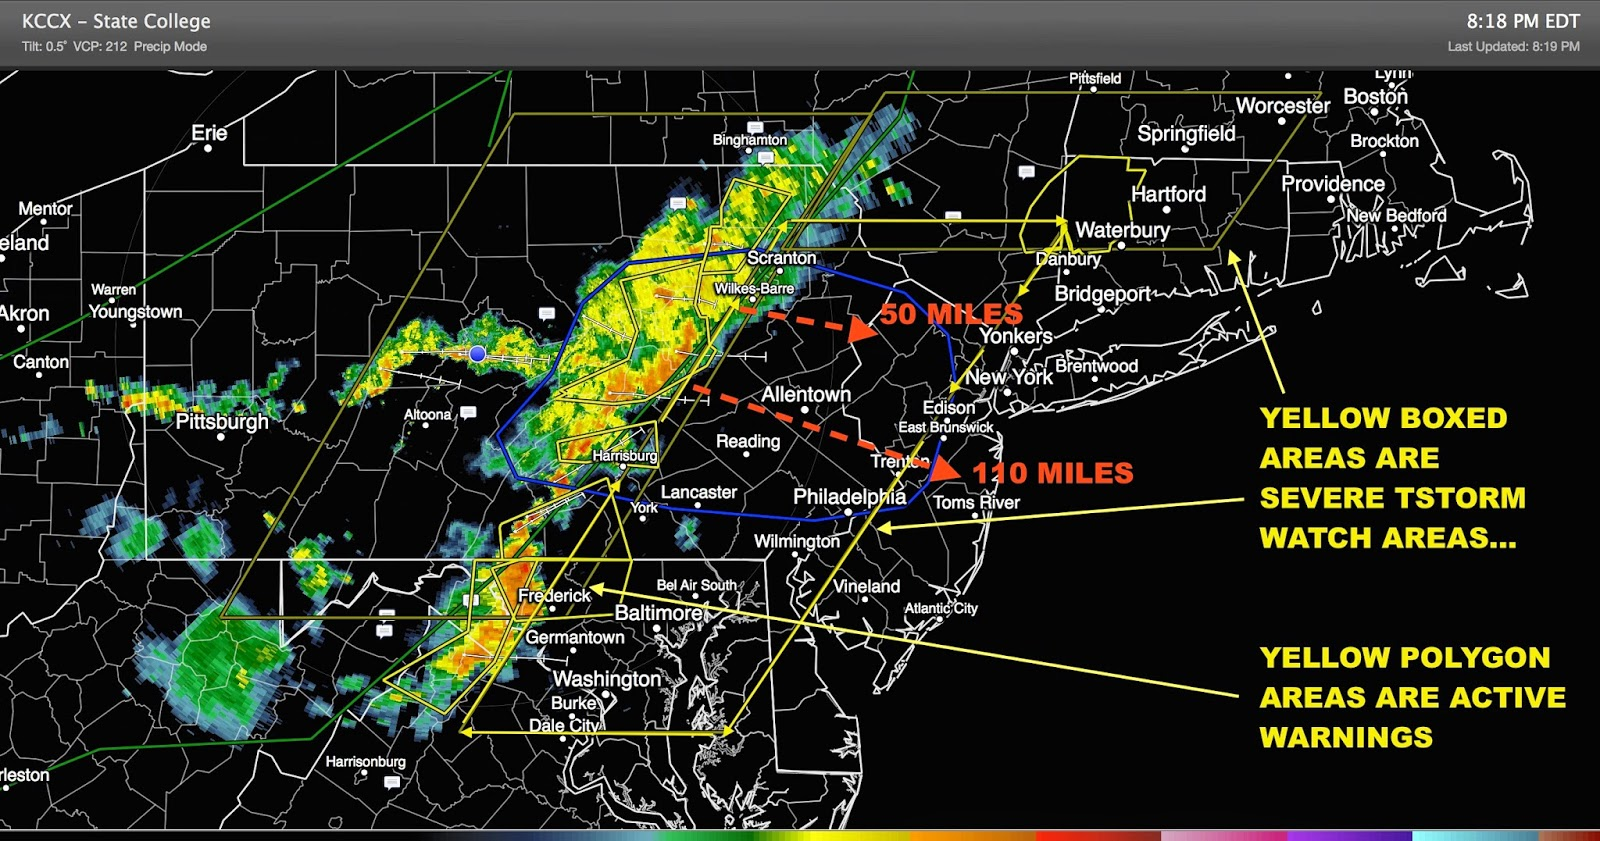 of nj with warnings likely by 9 00pm stay tuned as we cover the first of what is likely to be many severe thunderstorms over the next 48 72 hours